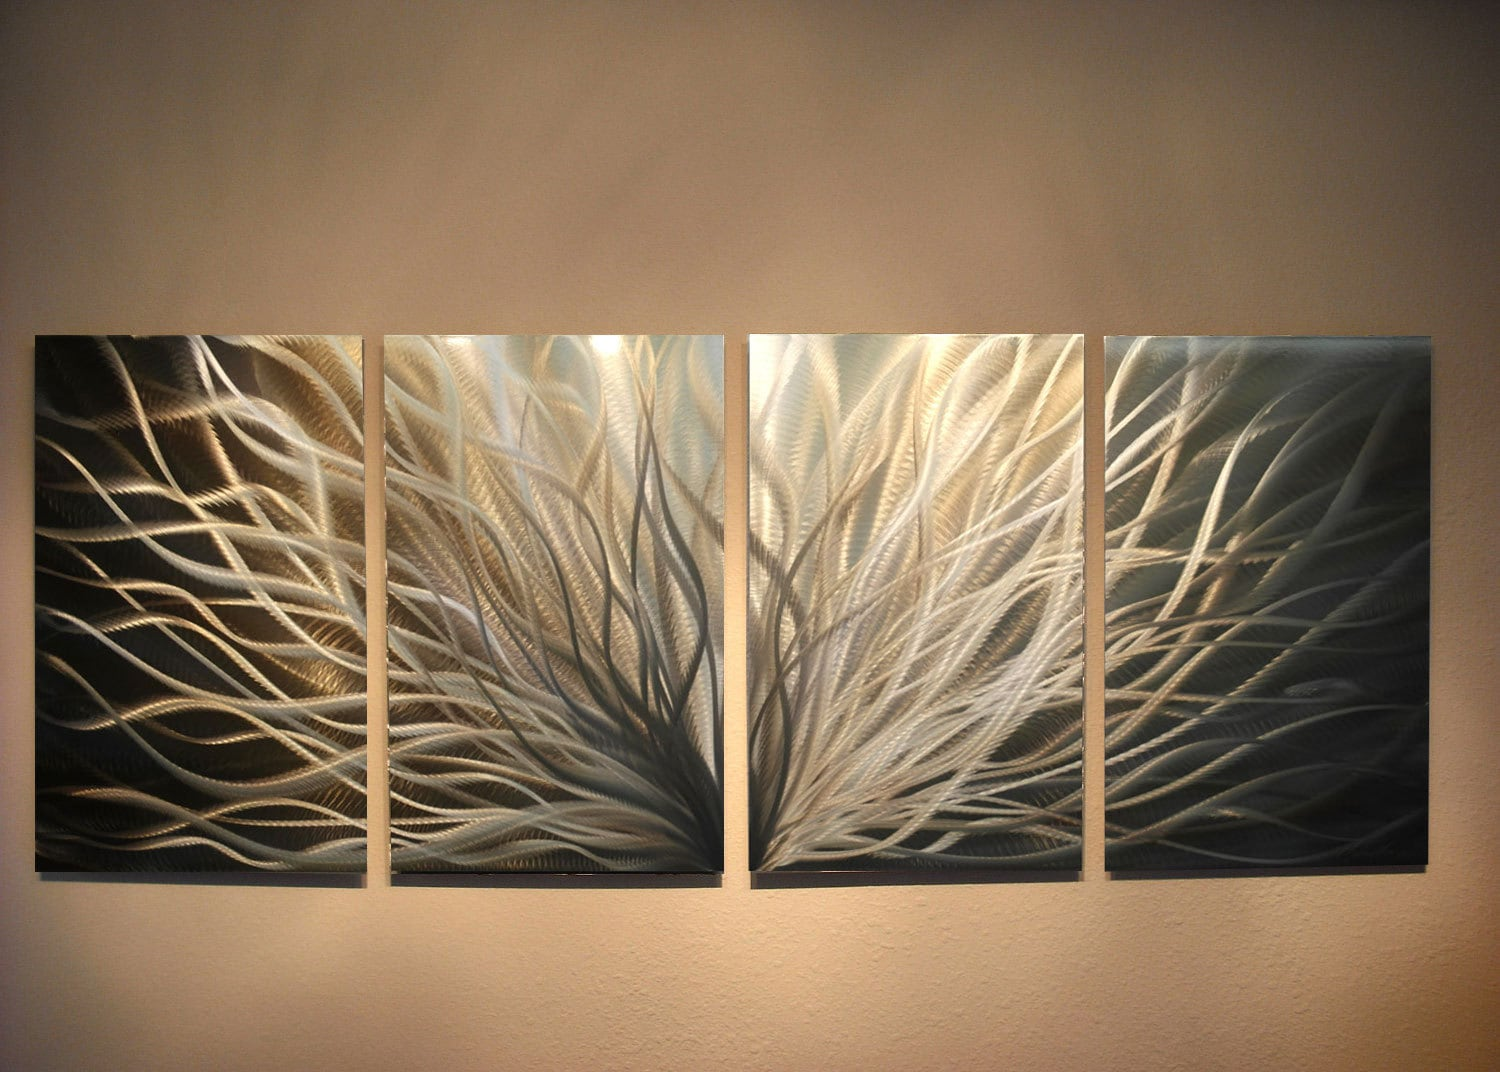 Wall Art Decor Inspiration Metal Art Wall Art Decor Aluminum Abstract Contemporary Modern Inspiration Design